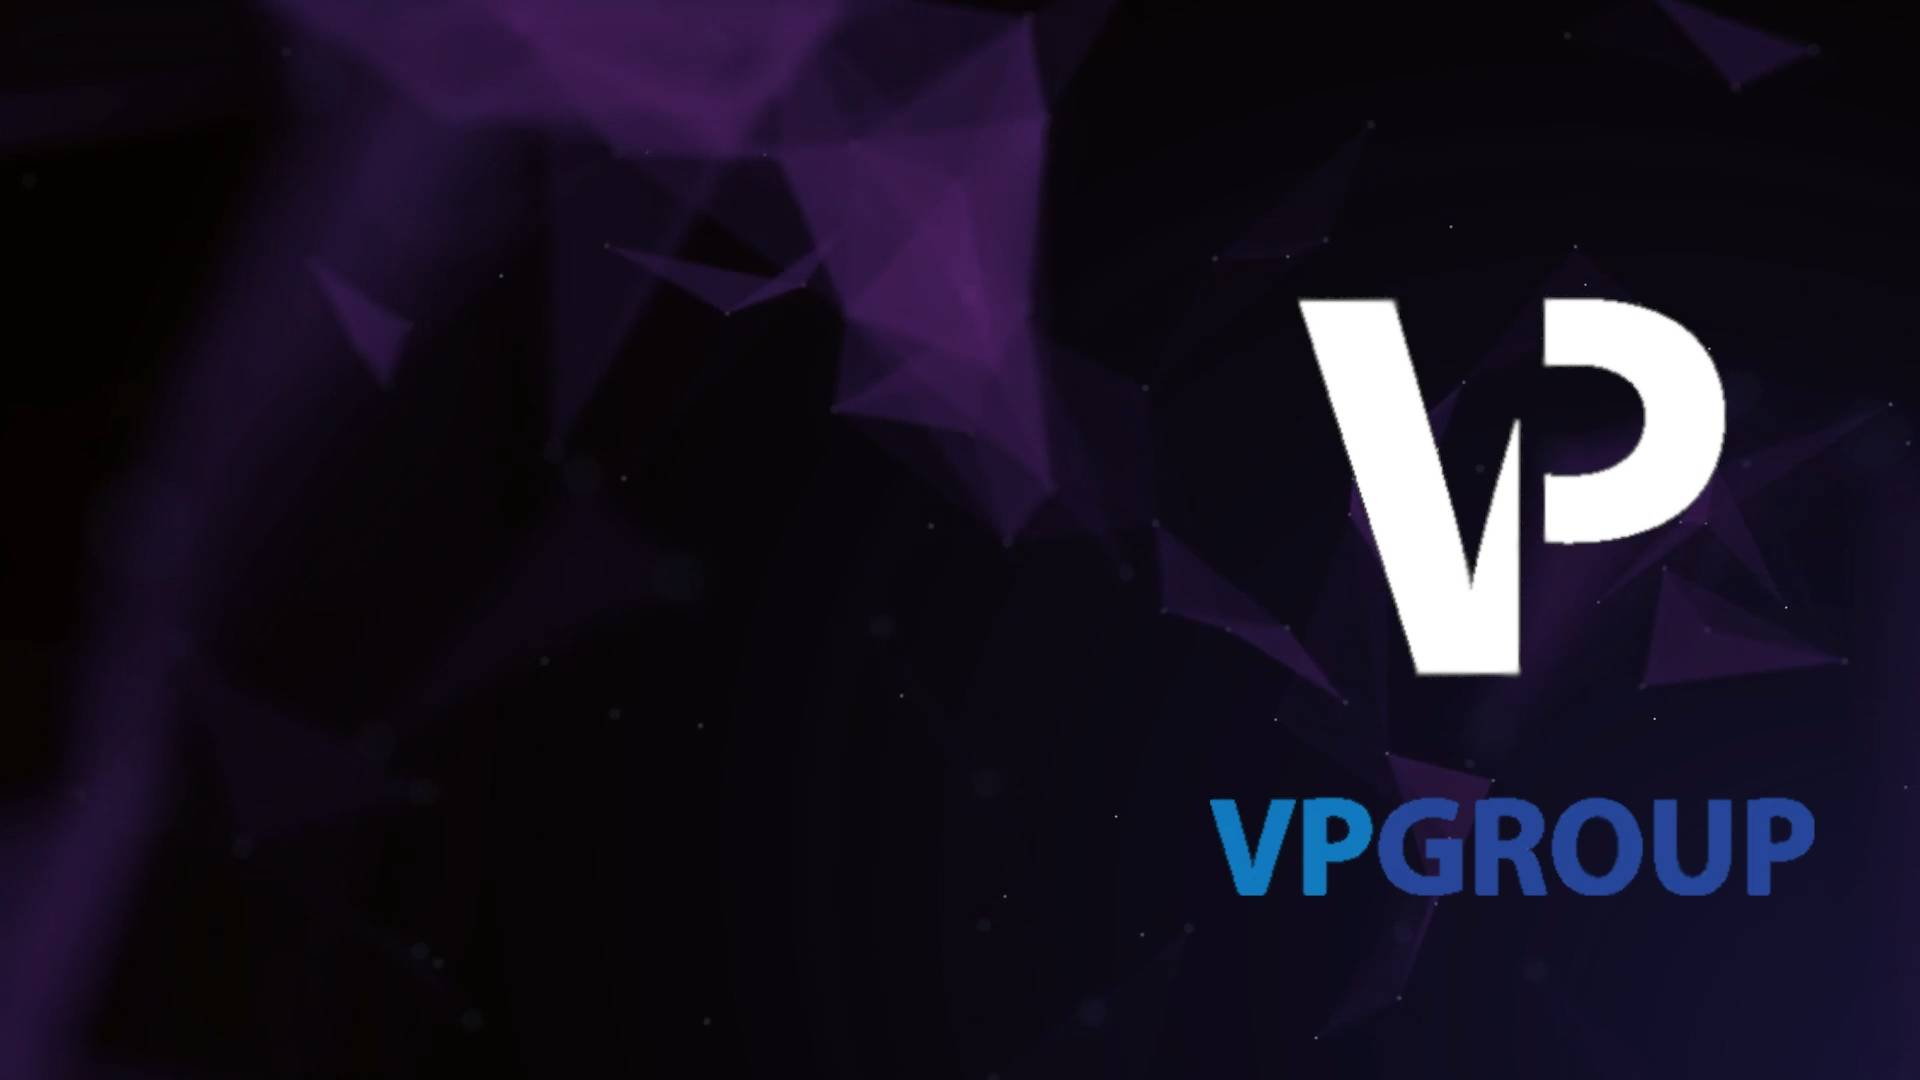 VPGROUP